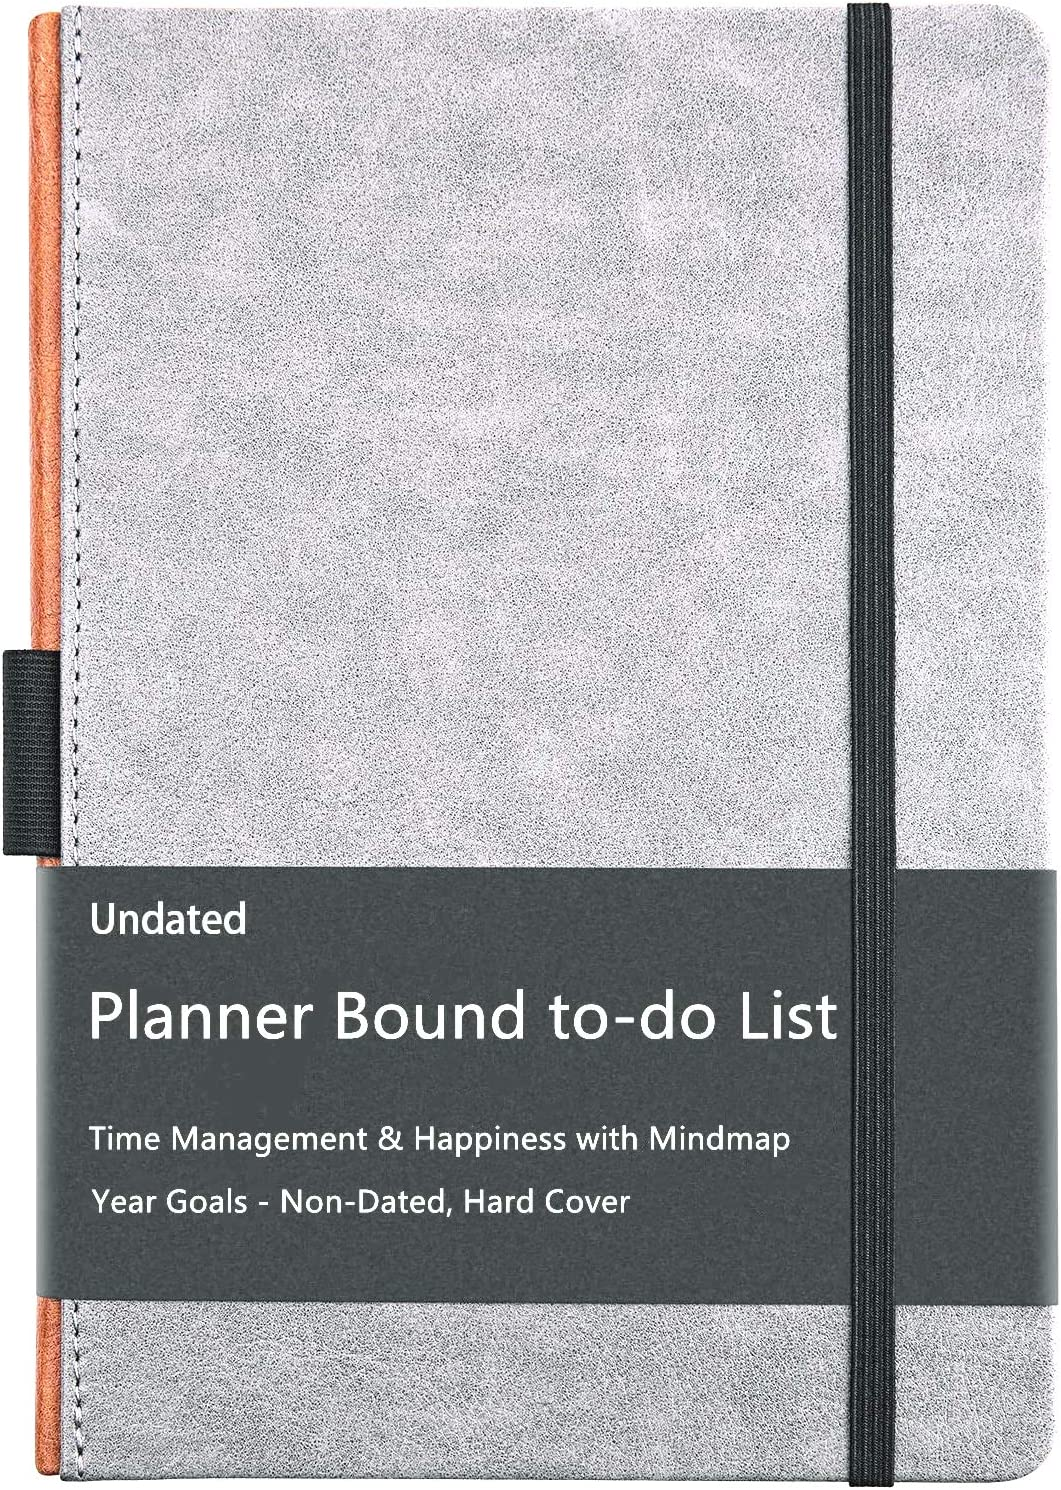 Planner Bound to-do List - Daily Calendar Planner to Increase Productivity, Time Management & Happiness with Mindmap & Year Goals - Non-Dated, Hard Cover, Gray